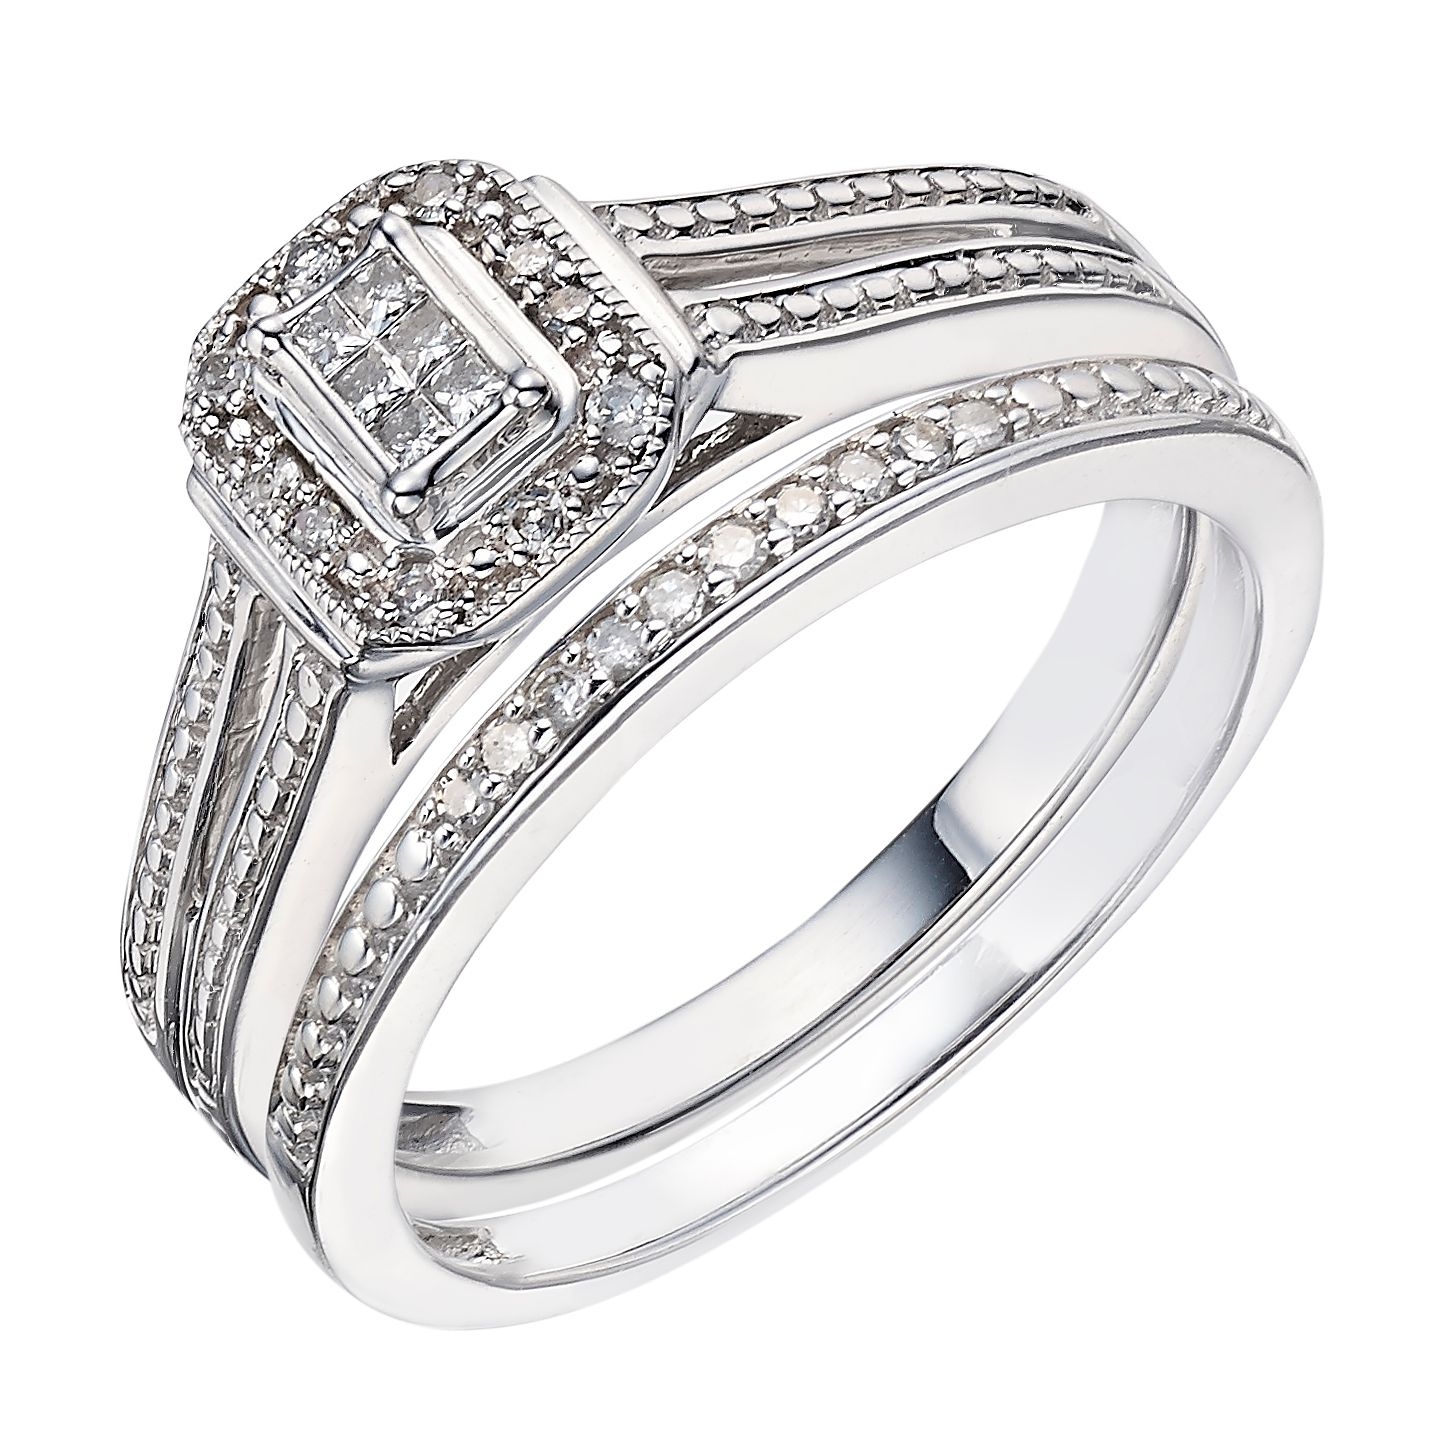 Perfect Fit Diamond Jewellery